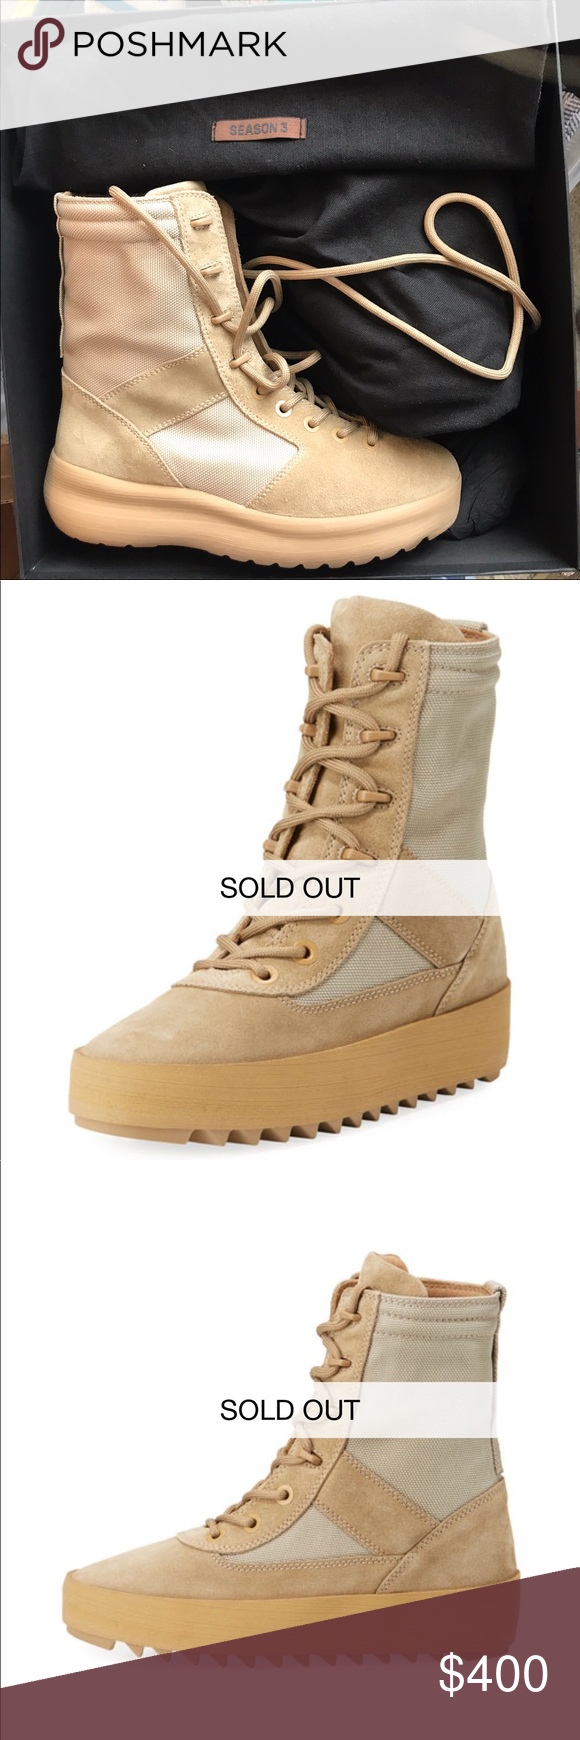 6a29b5916f5 YEEZY SUEDE PLATFORM DESERT BOOTS Never worn. Flawless condition. Women s  size 10 Men s size 8.5 Yeezy Shoes Lace Up Boots